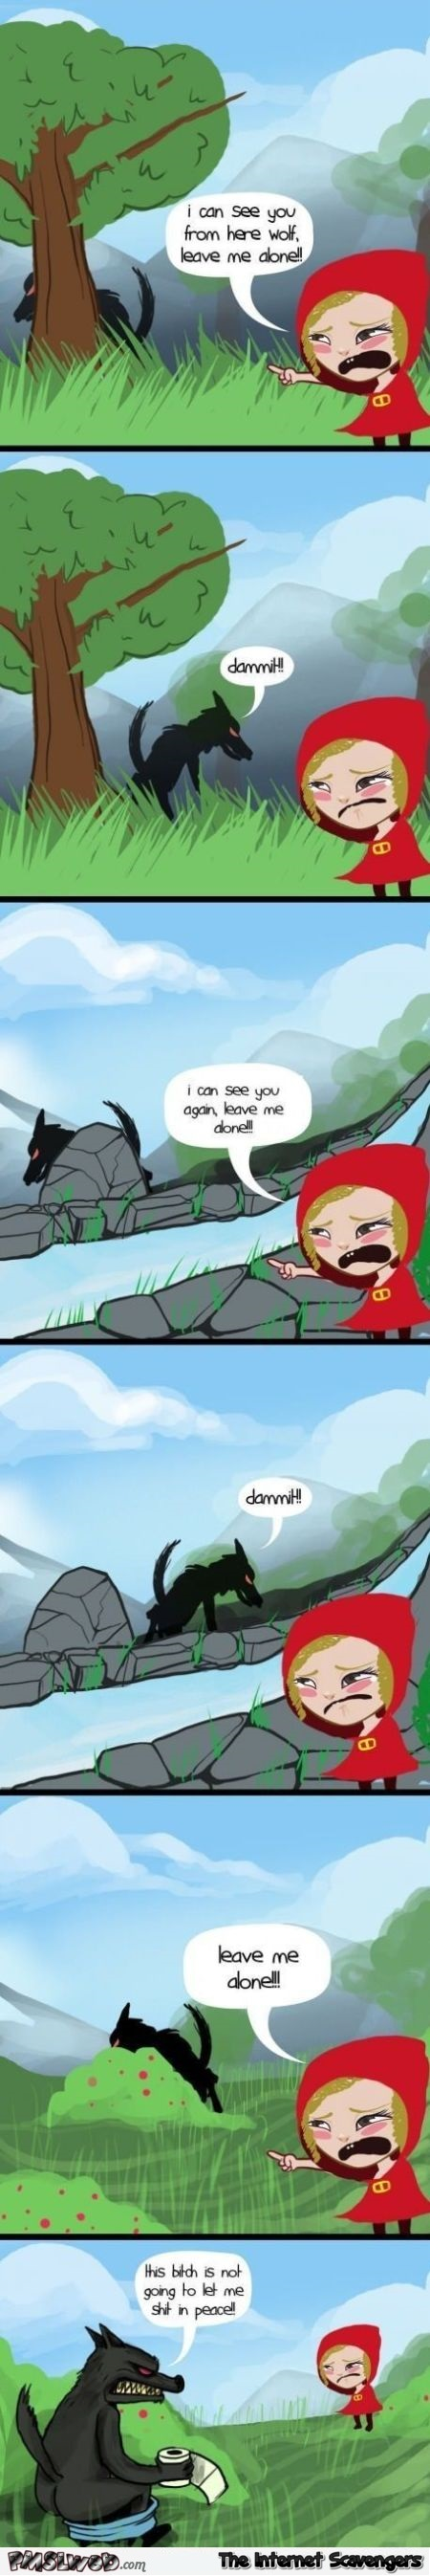 Funny sarcastic red riding hood cartoon @PMSLweb.com